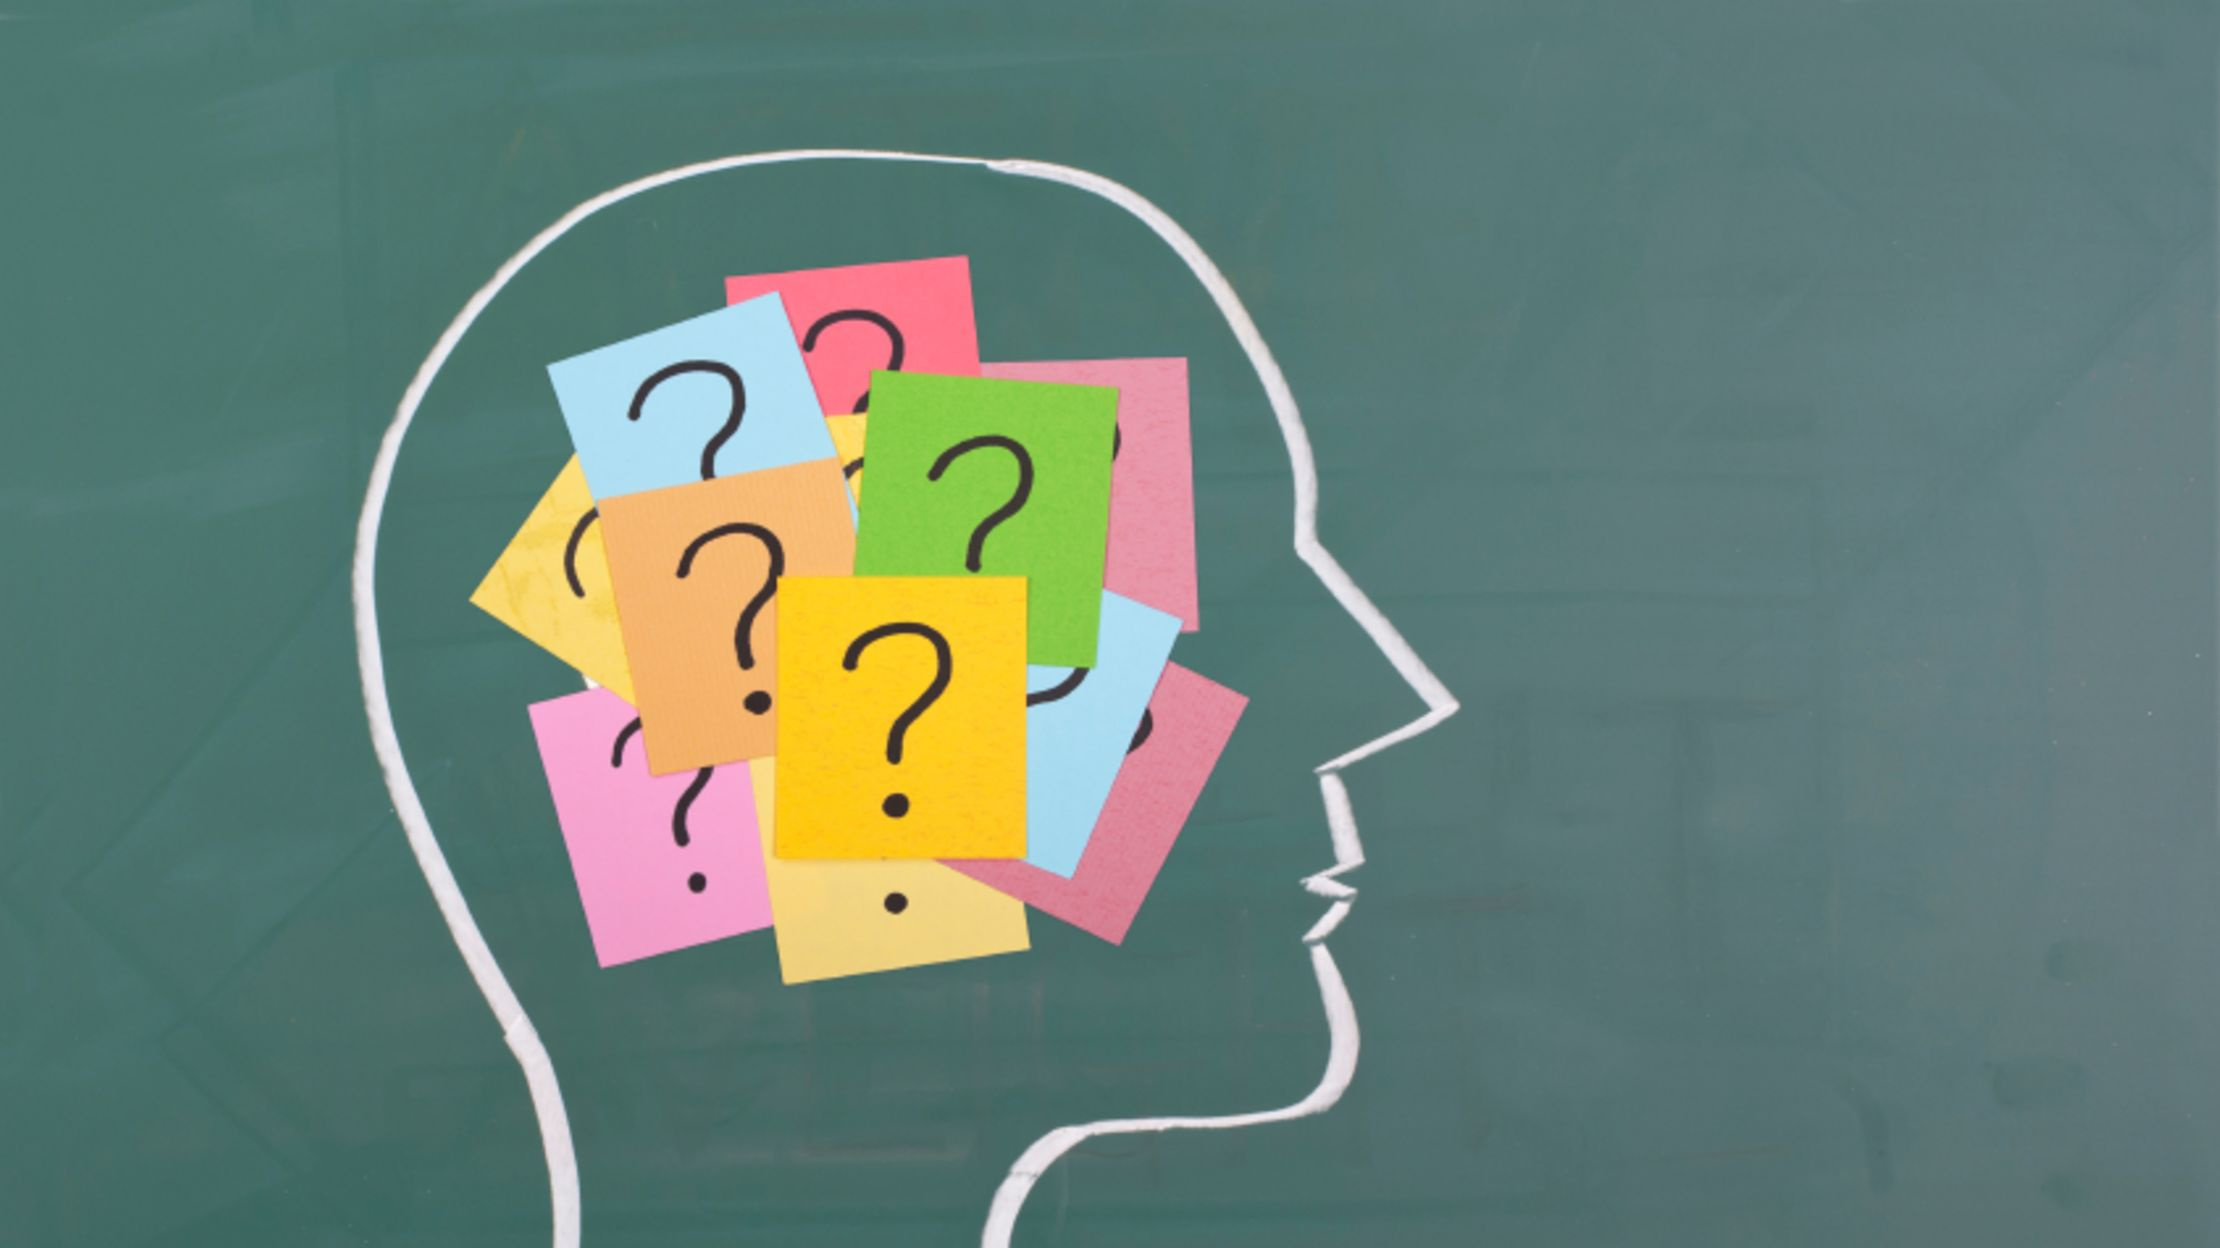 The Answer Starts With 'F' | Mental Floss